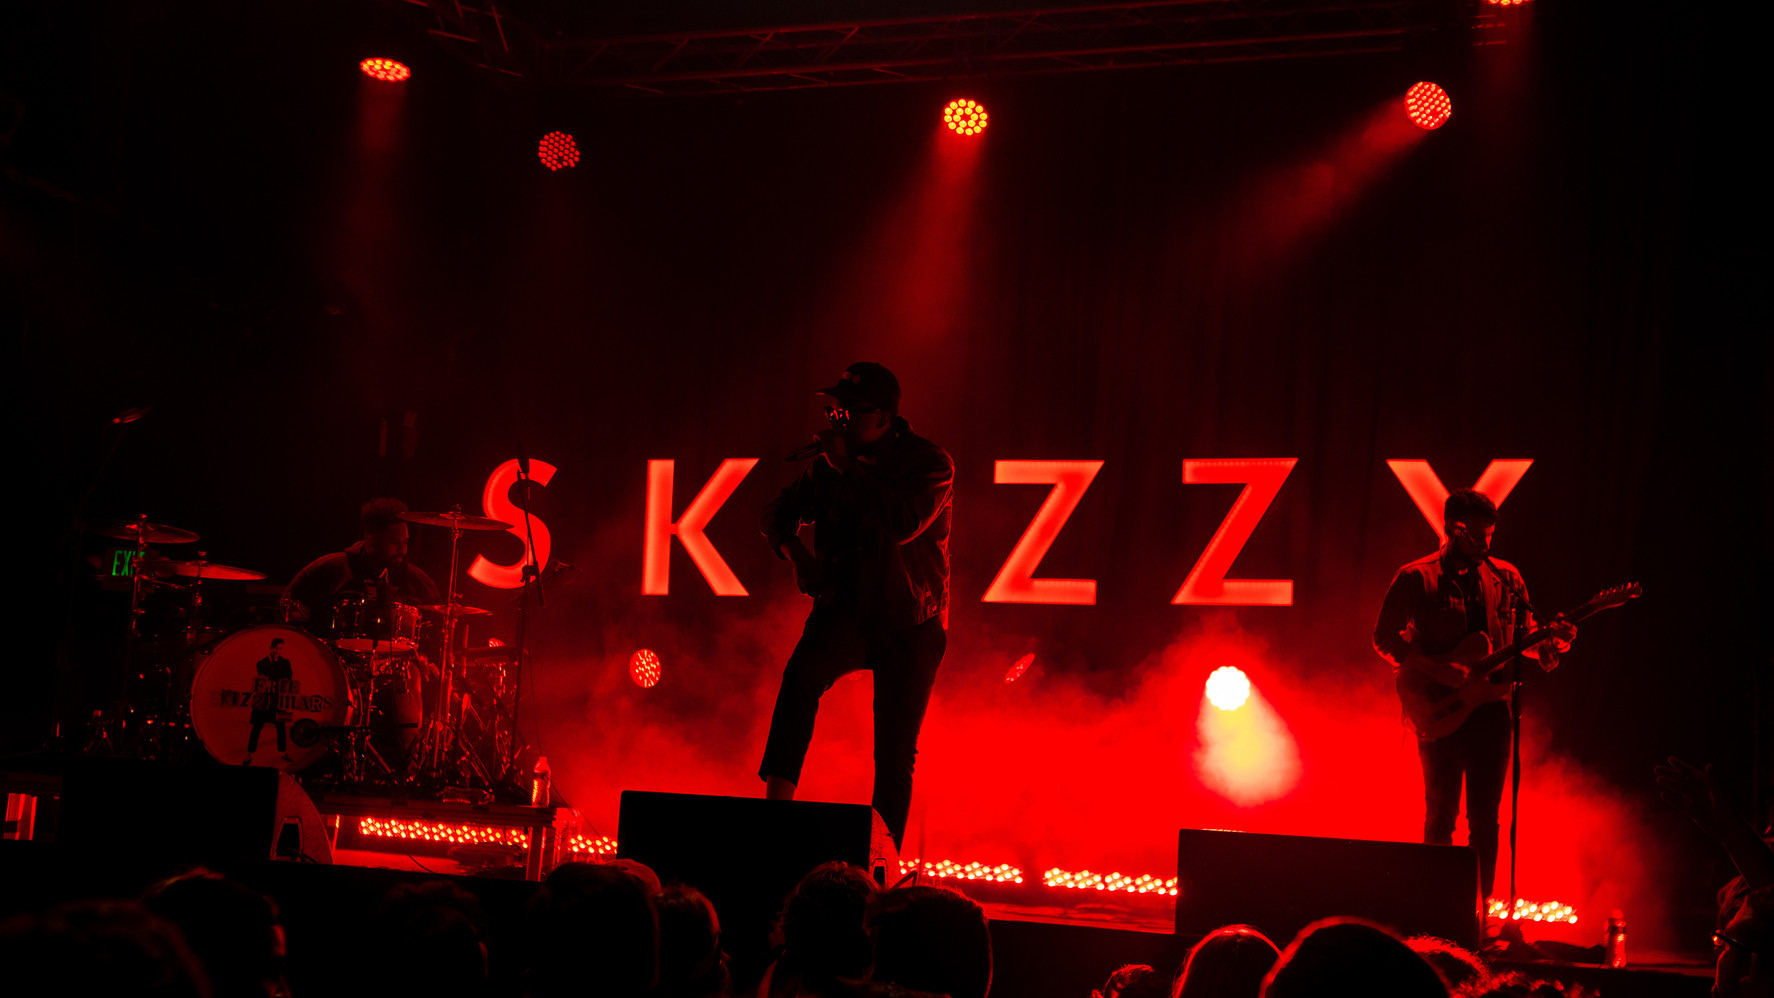 10.31.19 | Skizzy Mars | Yoshi Flower | Catalyst Club, Santa Cruz, CA | Photographer: Dominic Wong